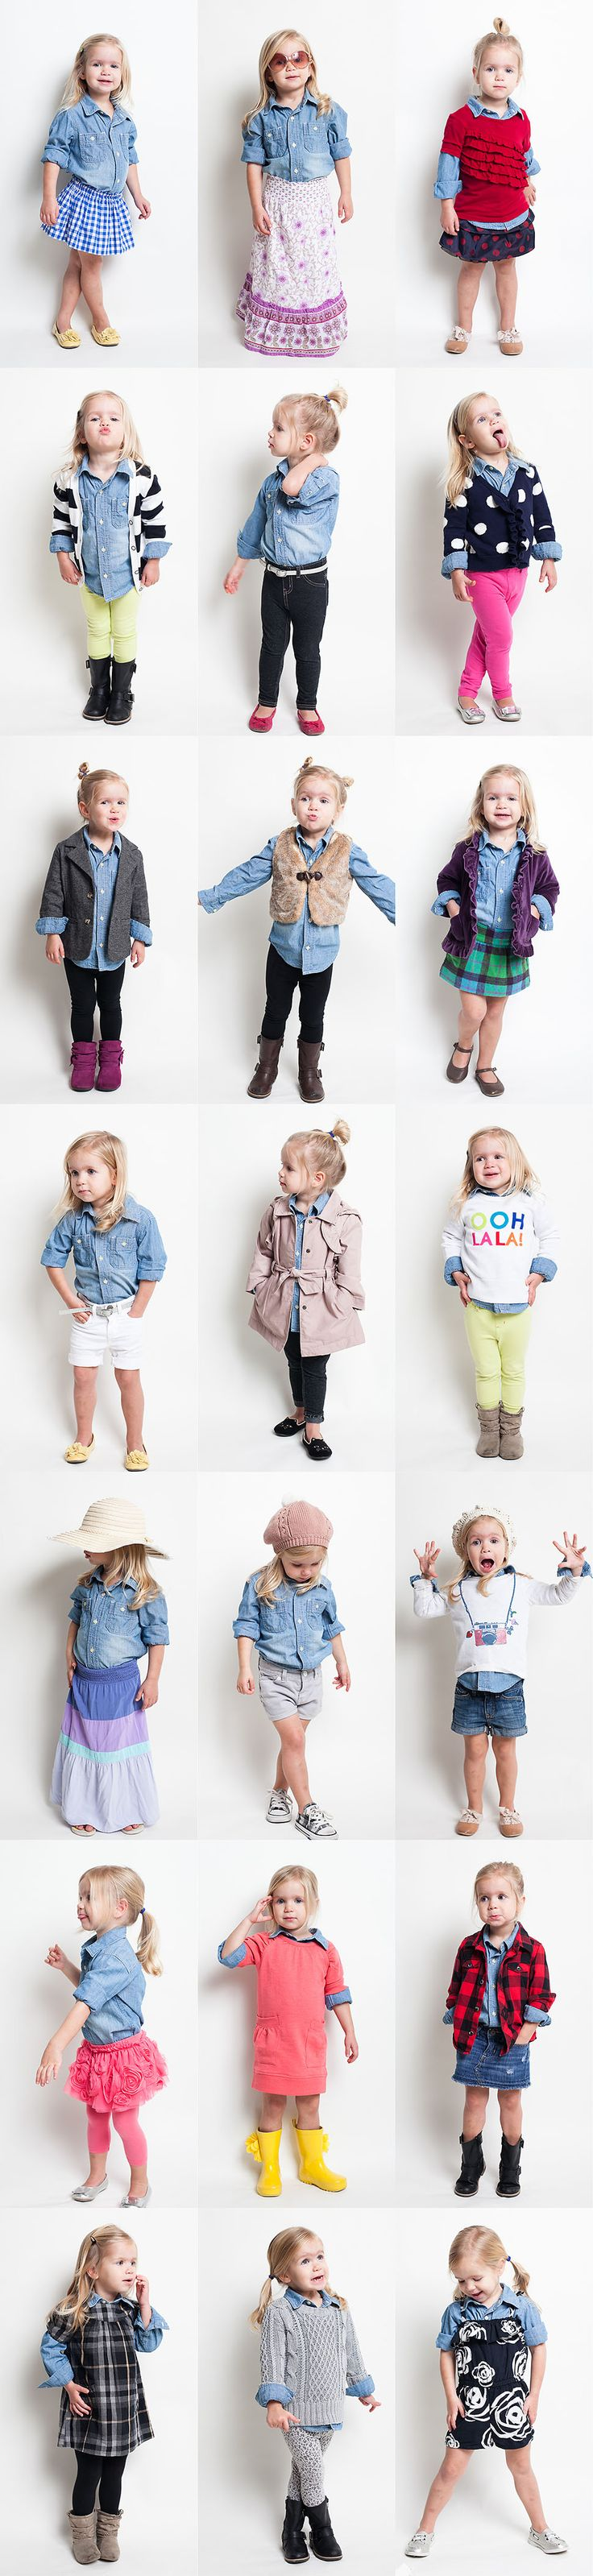 Toddler Chambray Shirt Project.  @C McManus look at her little yellow wellies with the flower! So cute.